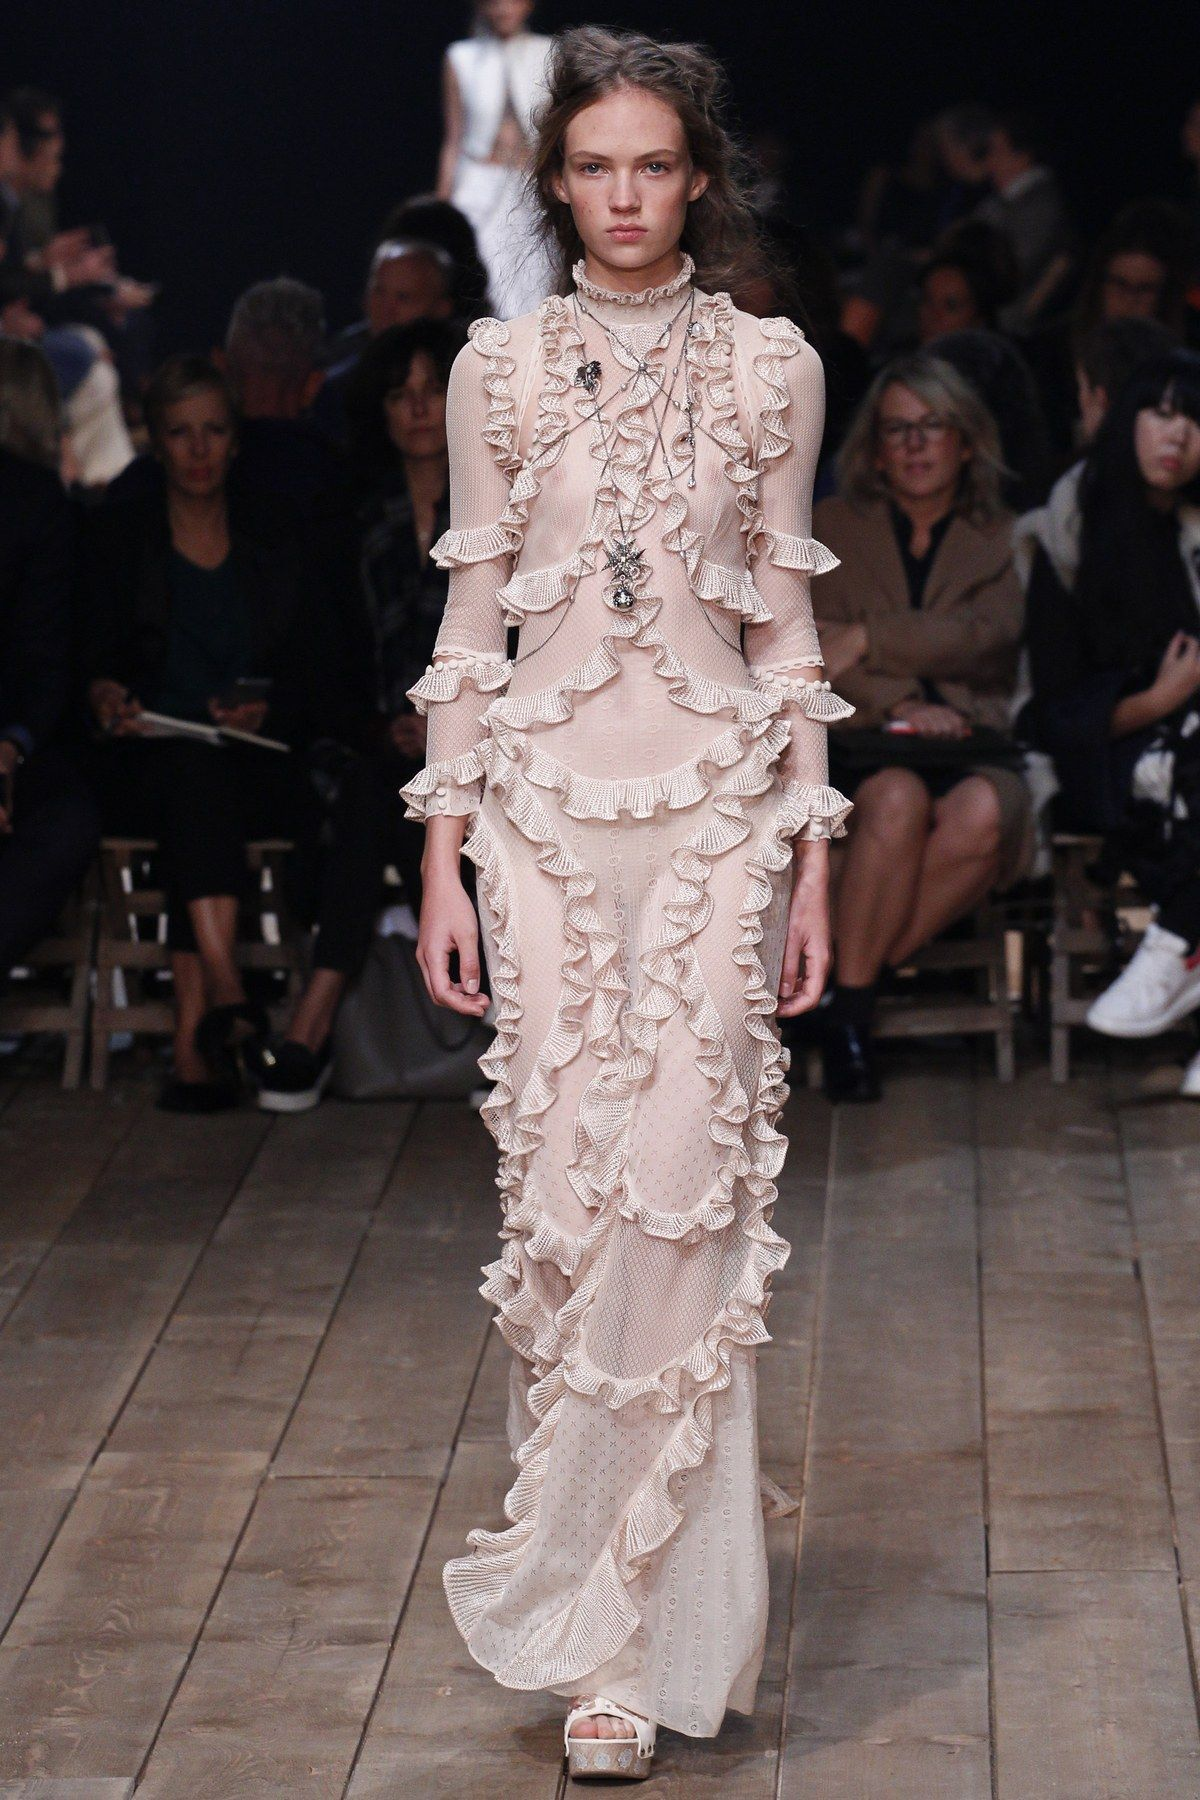 9303c24451b12 Alexander McQueen Spring 2016 Ready-to-Wear collection, runway looks,  beauty, models, and reviews.